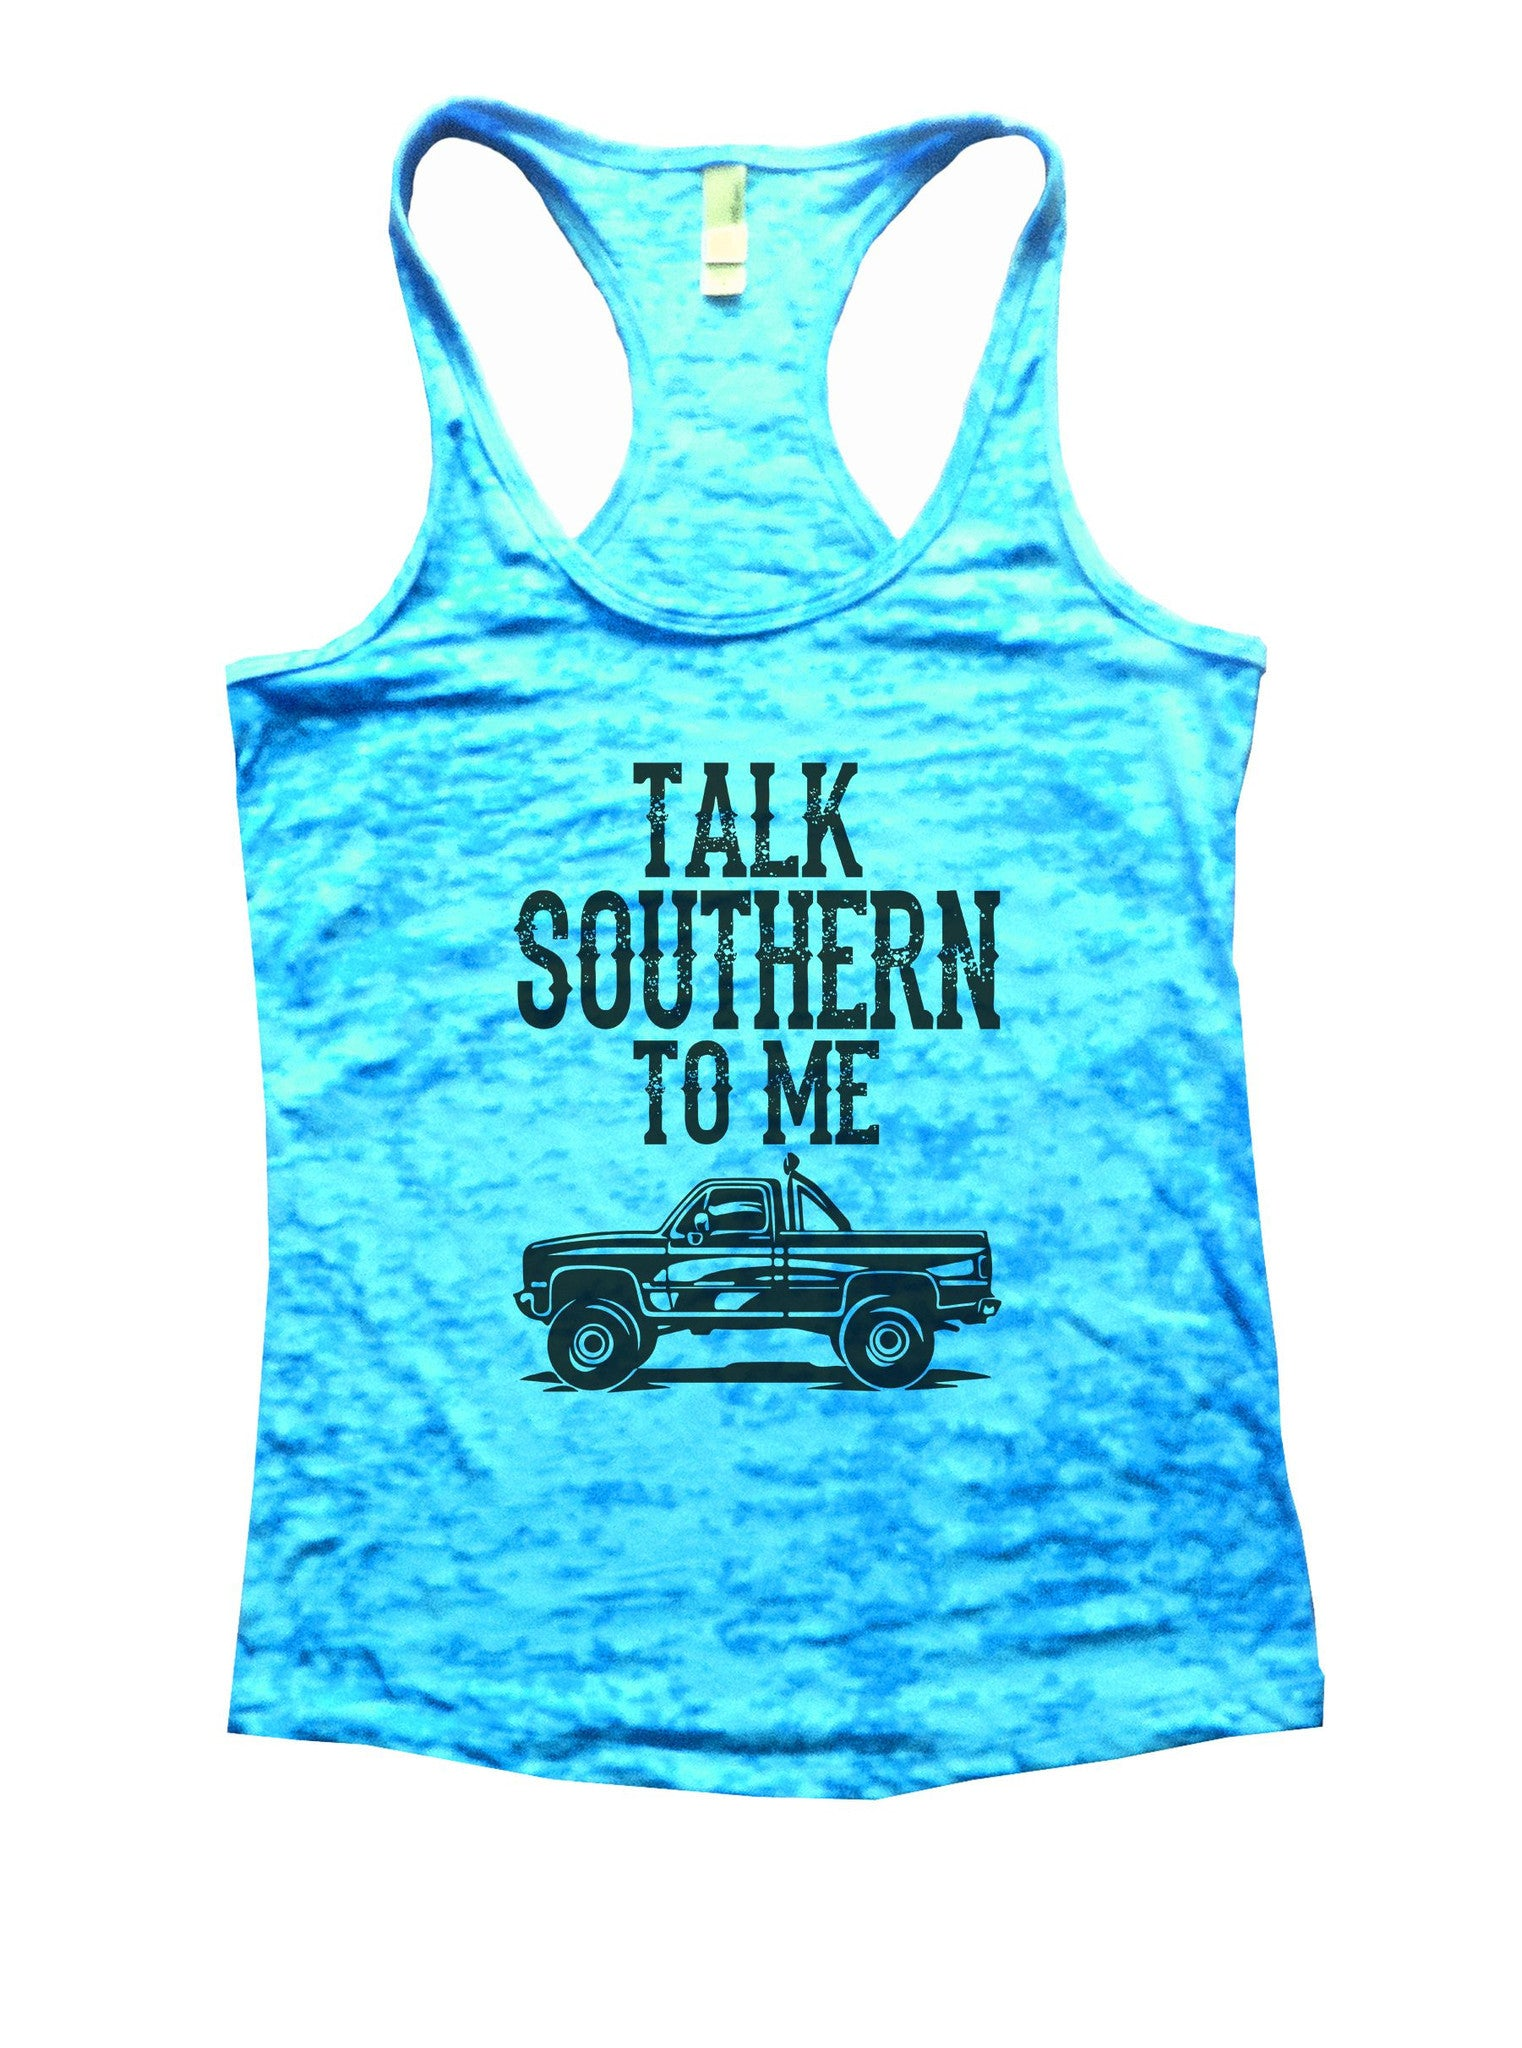 Talk Southern To Me Burnout Tank Top By BurnoutTankTops.com - 1010 - Funny Shirts Tank Tops Burnouts and Triblends  - 4